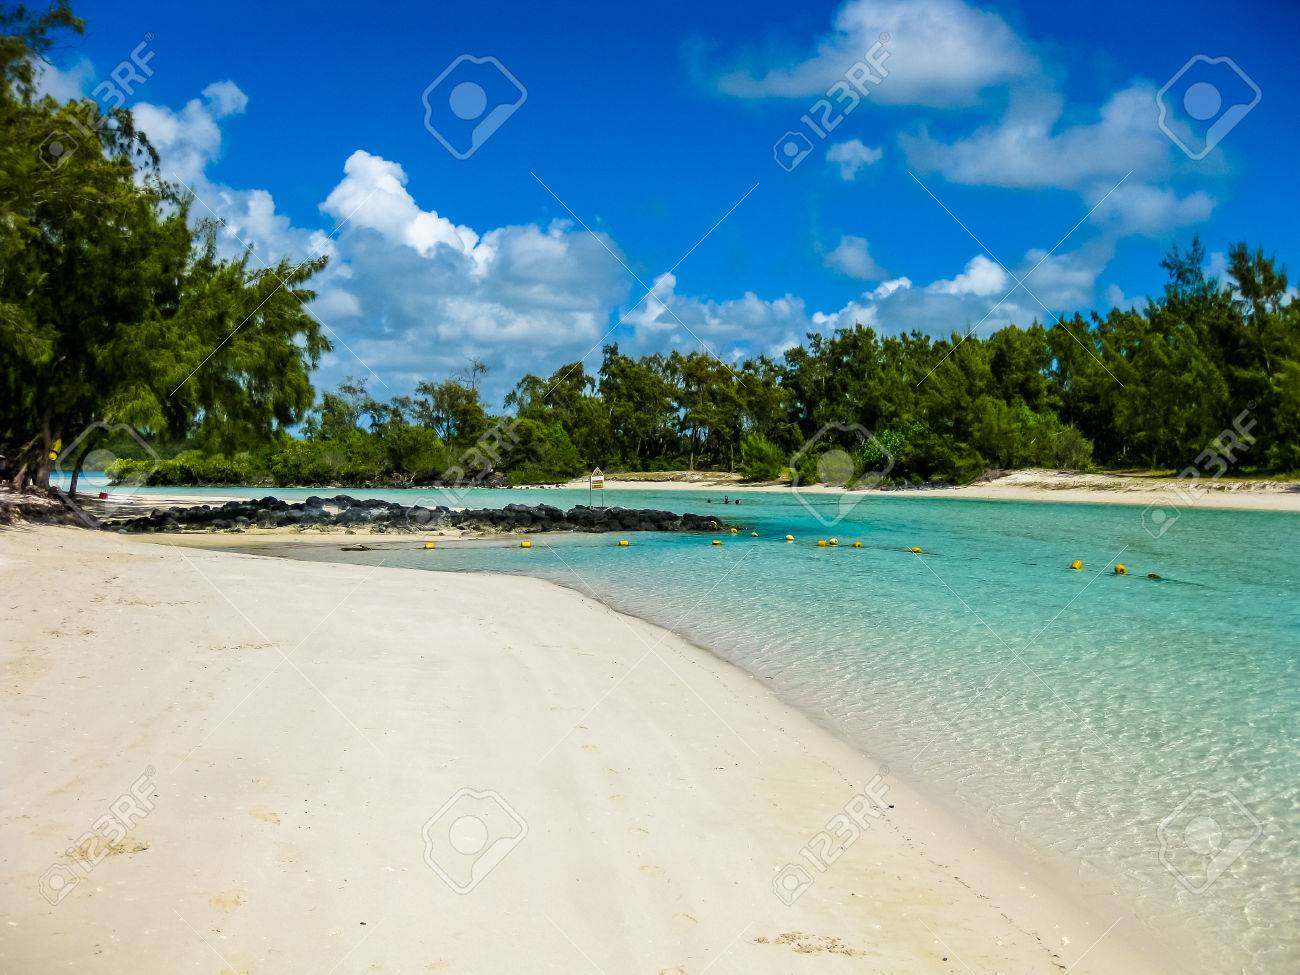 The spectacular and idyllic white beach of Deer Island near Bellemare, located on the east coast of Mauritius, one of the main attractions. Stock Photo - 47559338